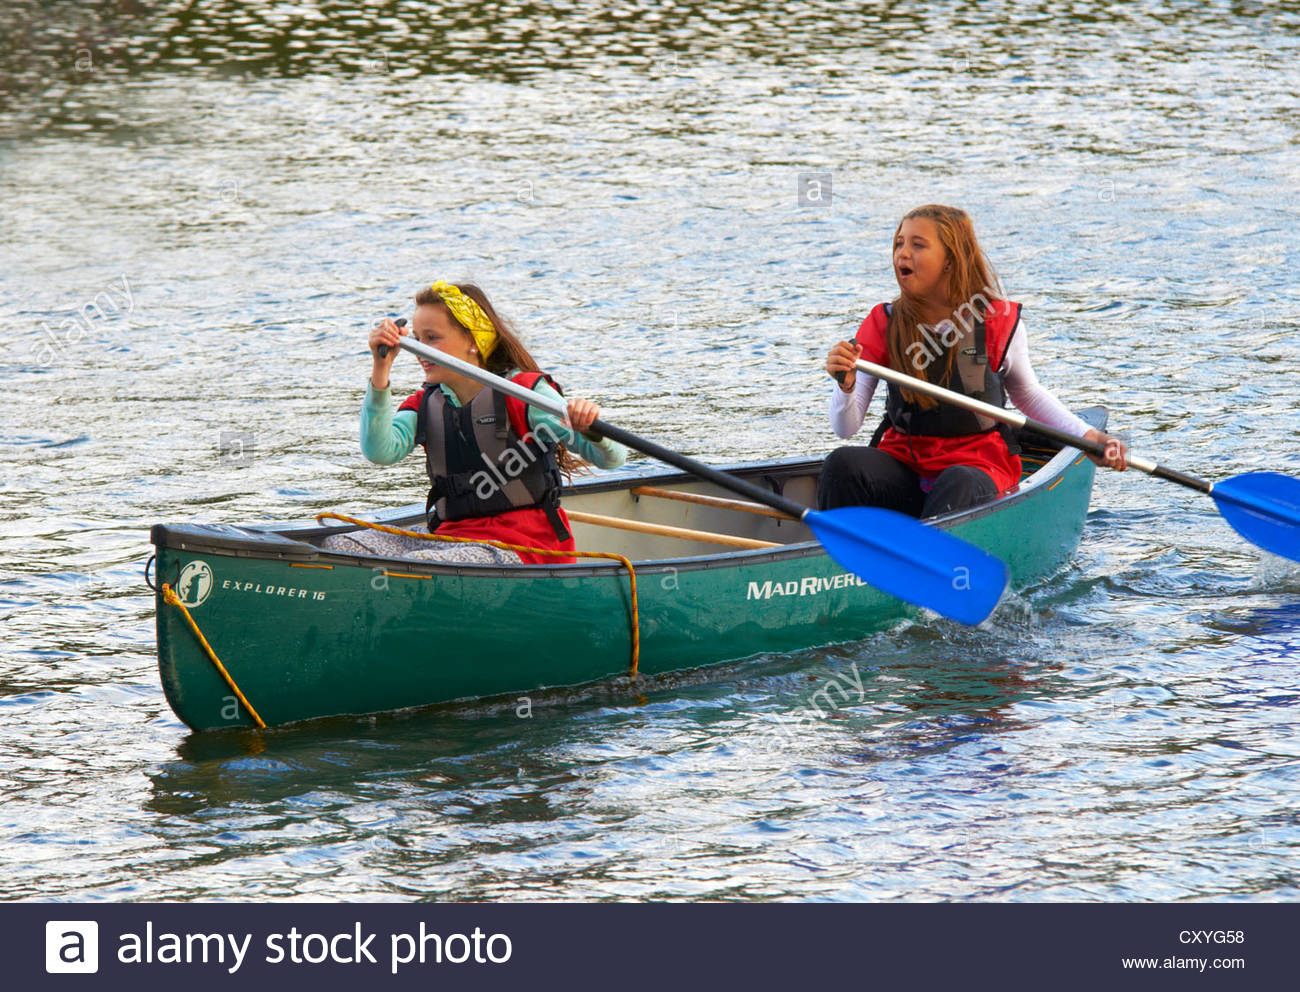 two teenage girls 13 - 15 rowing a canoe and having fun on the water - Stock Image